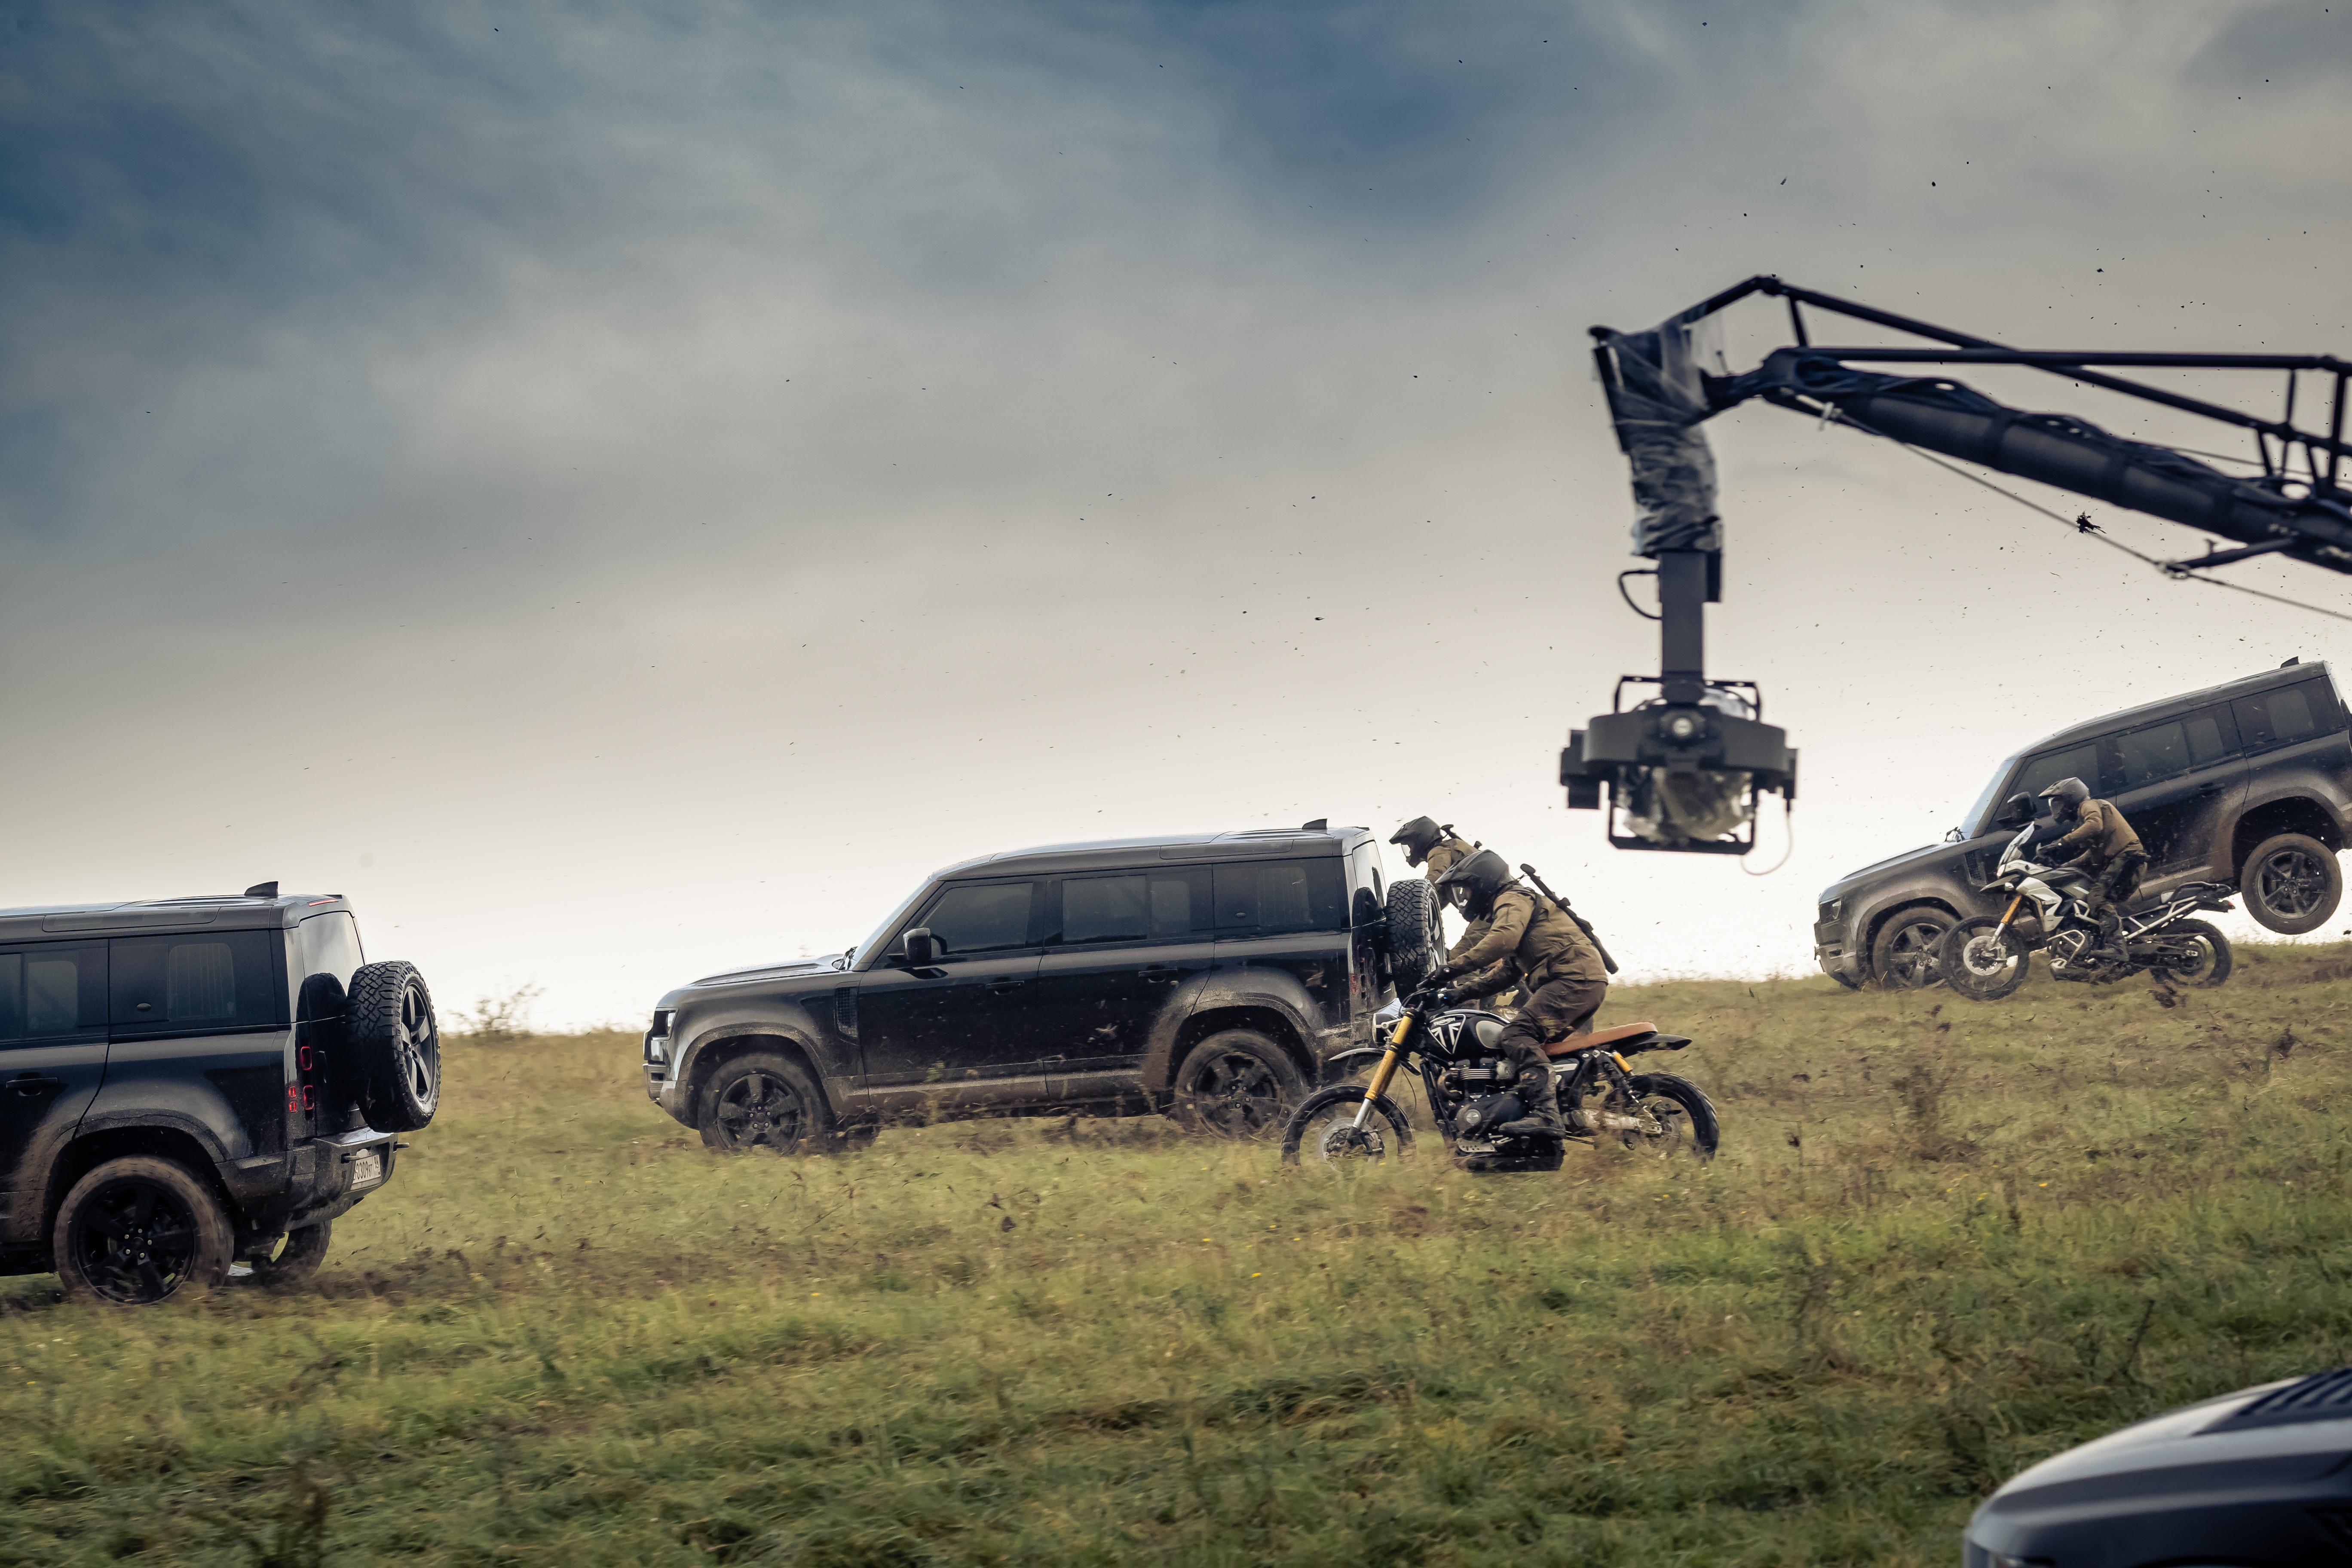 Defender 110 action in the upcoming Bond film